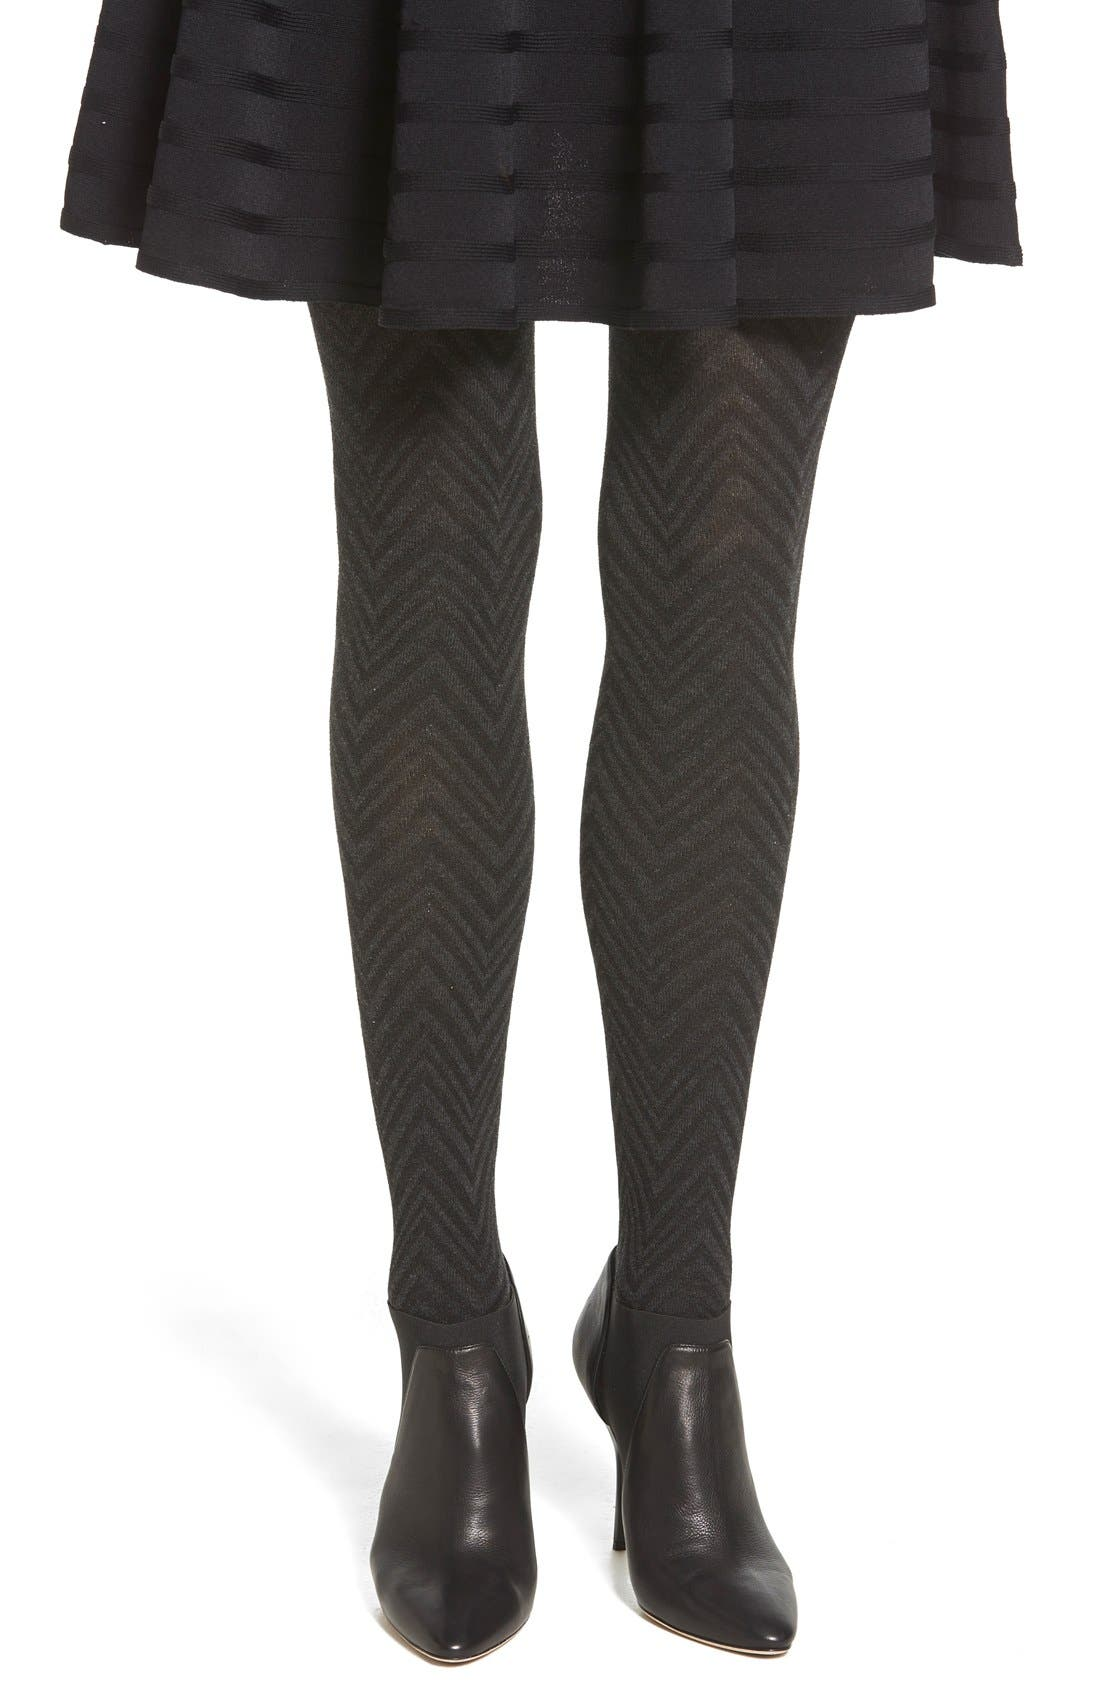 Alternate Image 1 Selected - Hue Chevron Stripe Tights with Stirrup Straps